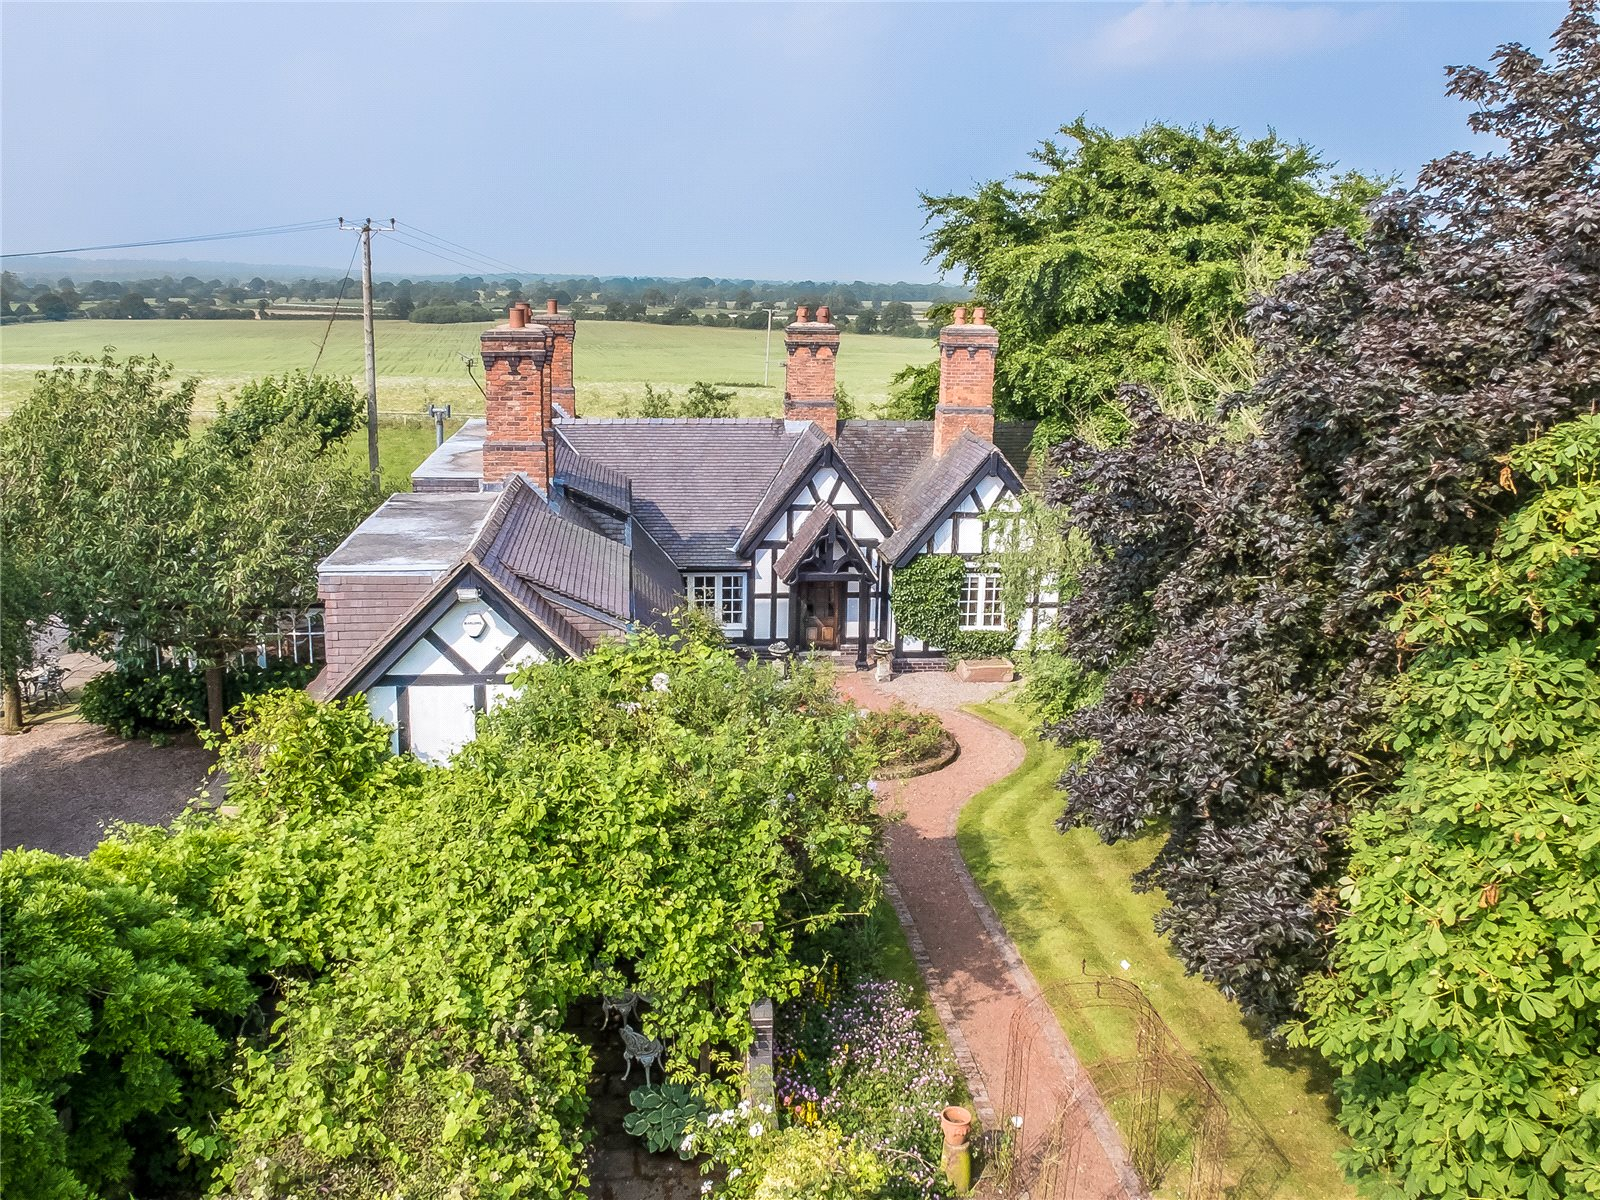 Additional photo for property listing at Peckforton Hall Lane, Peckforton, Tarporley, Cheshire, CW6 Tarporley, Inglaterra